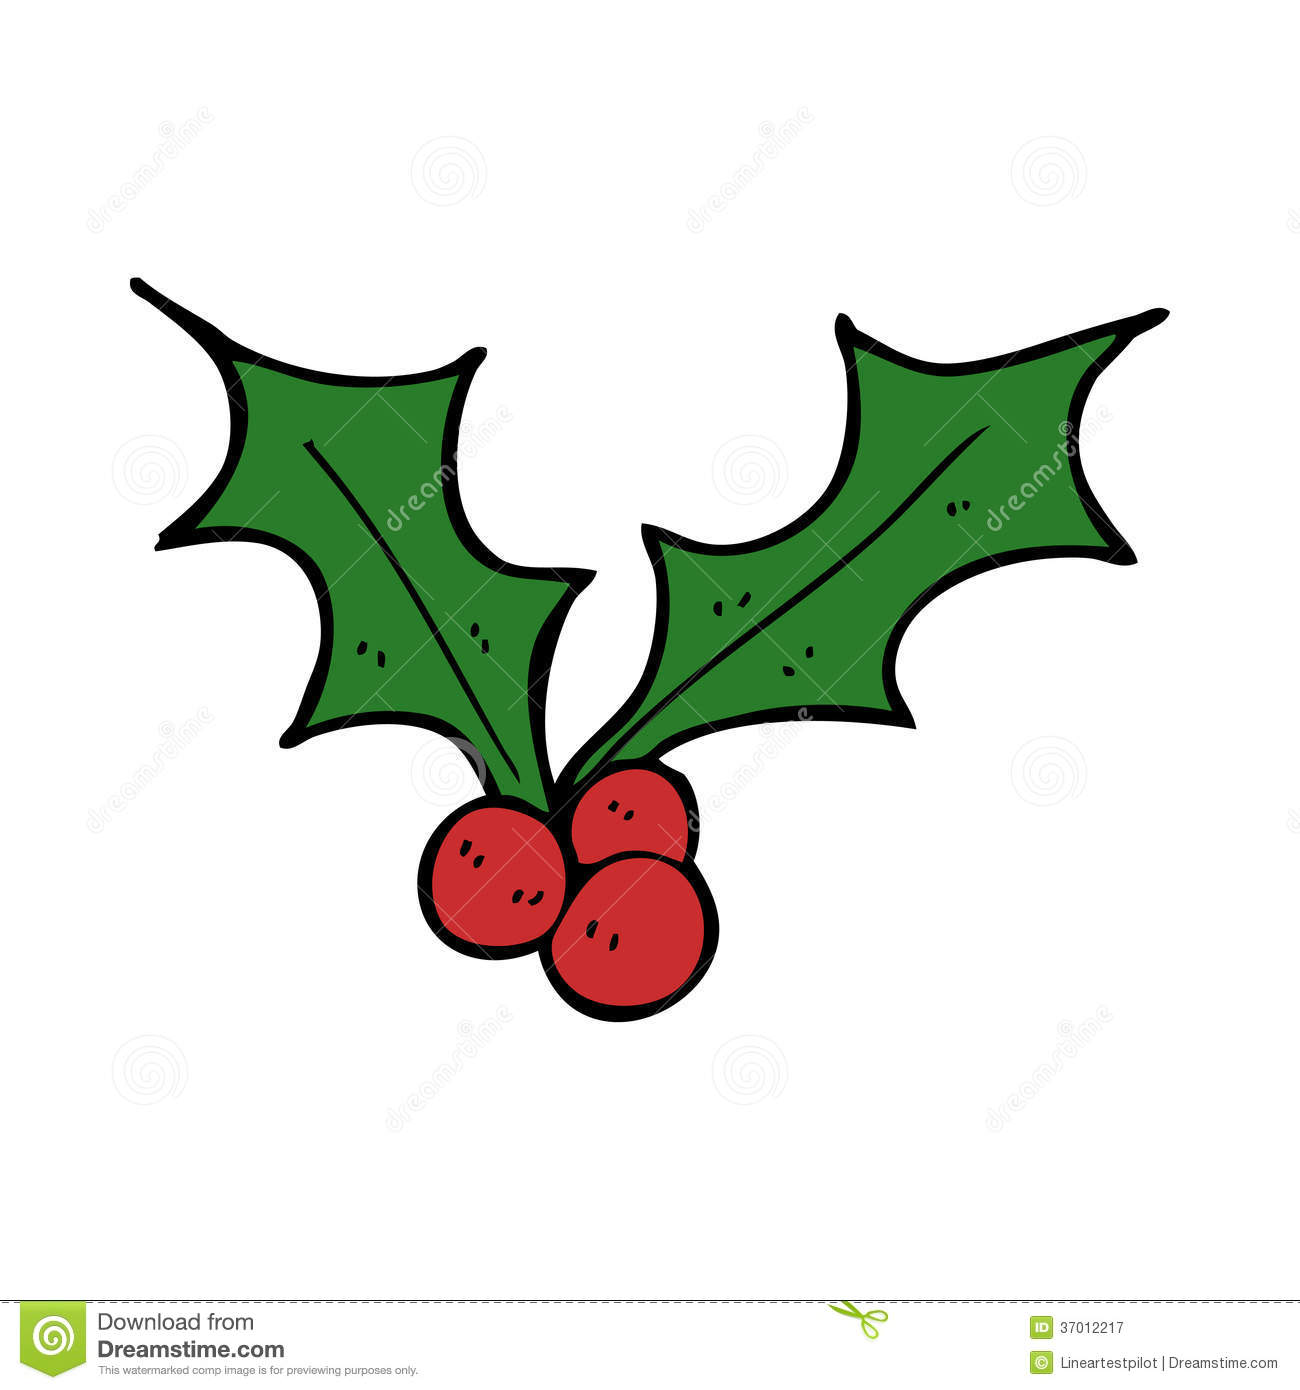 Cartoon christmas holly stock vector illustration of for Holl image